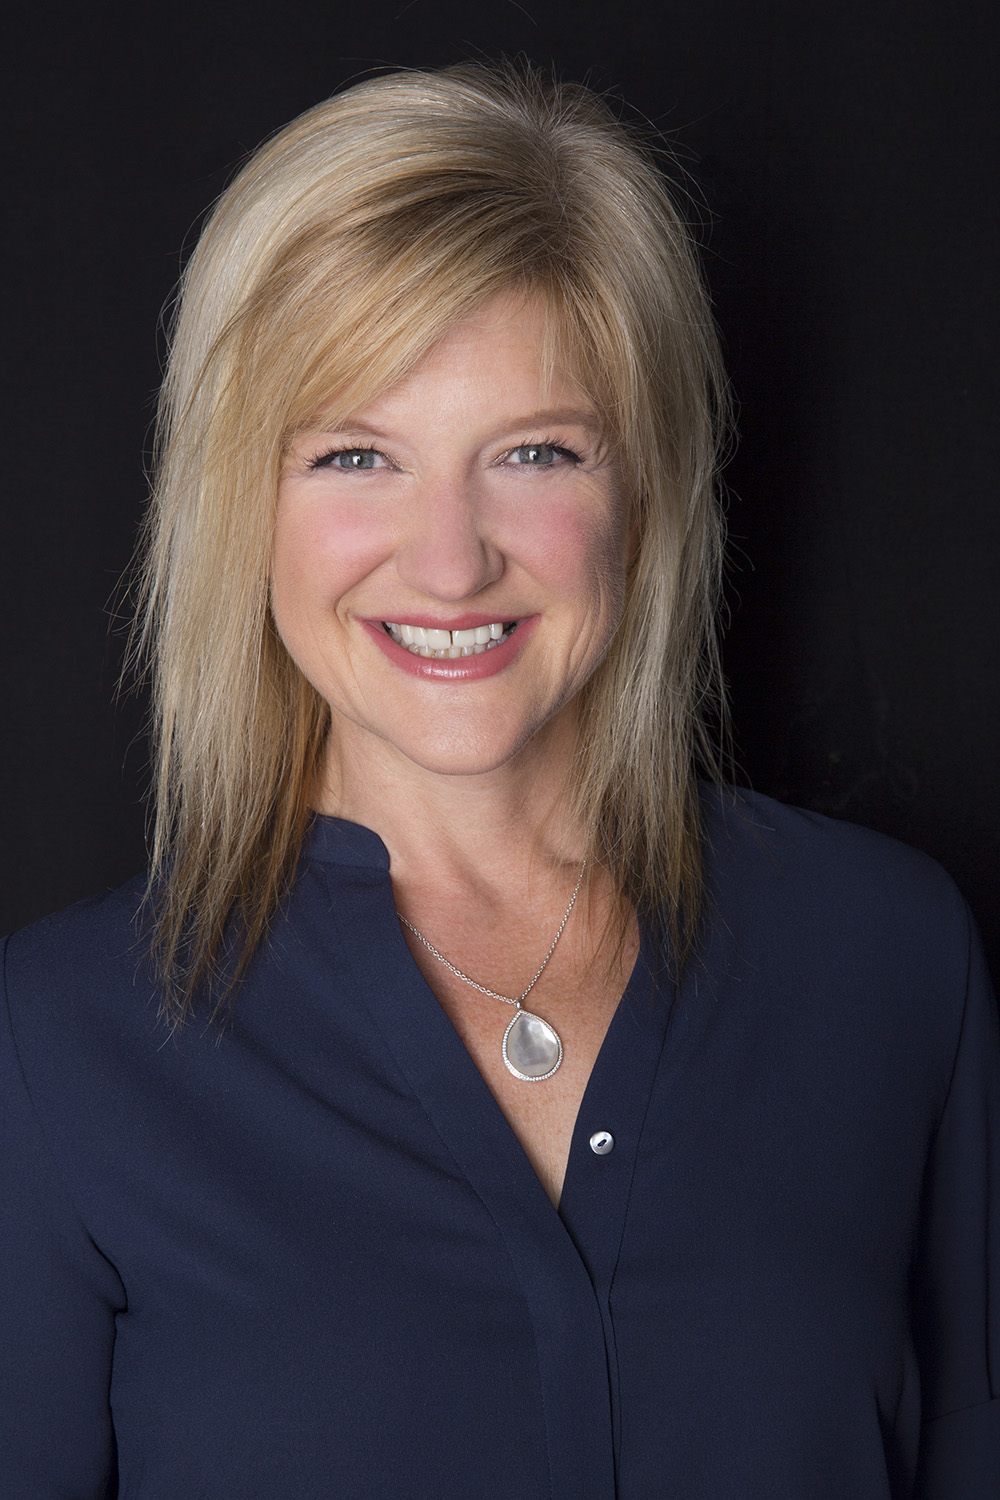 https://femalefounders.org/wp-content/uploads/2019/03/Jill-Nelson-Headshot-Web-sized.jpg